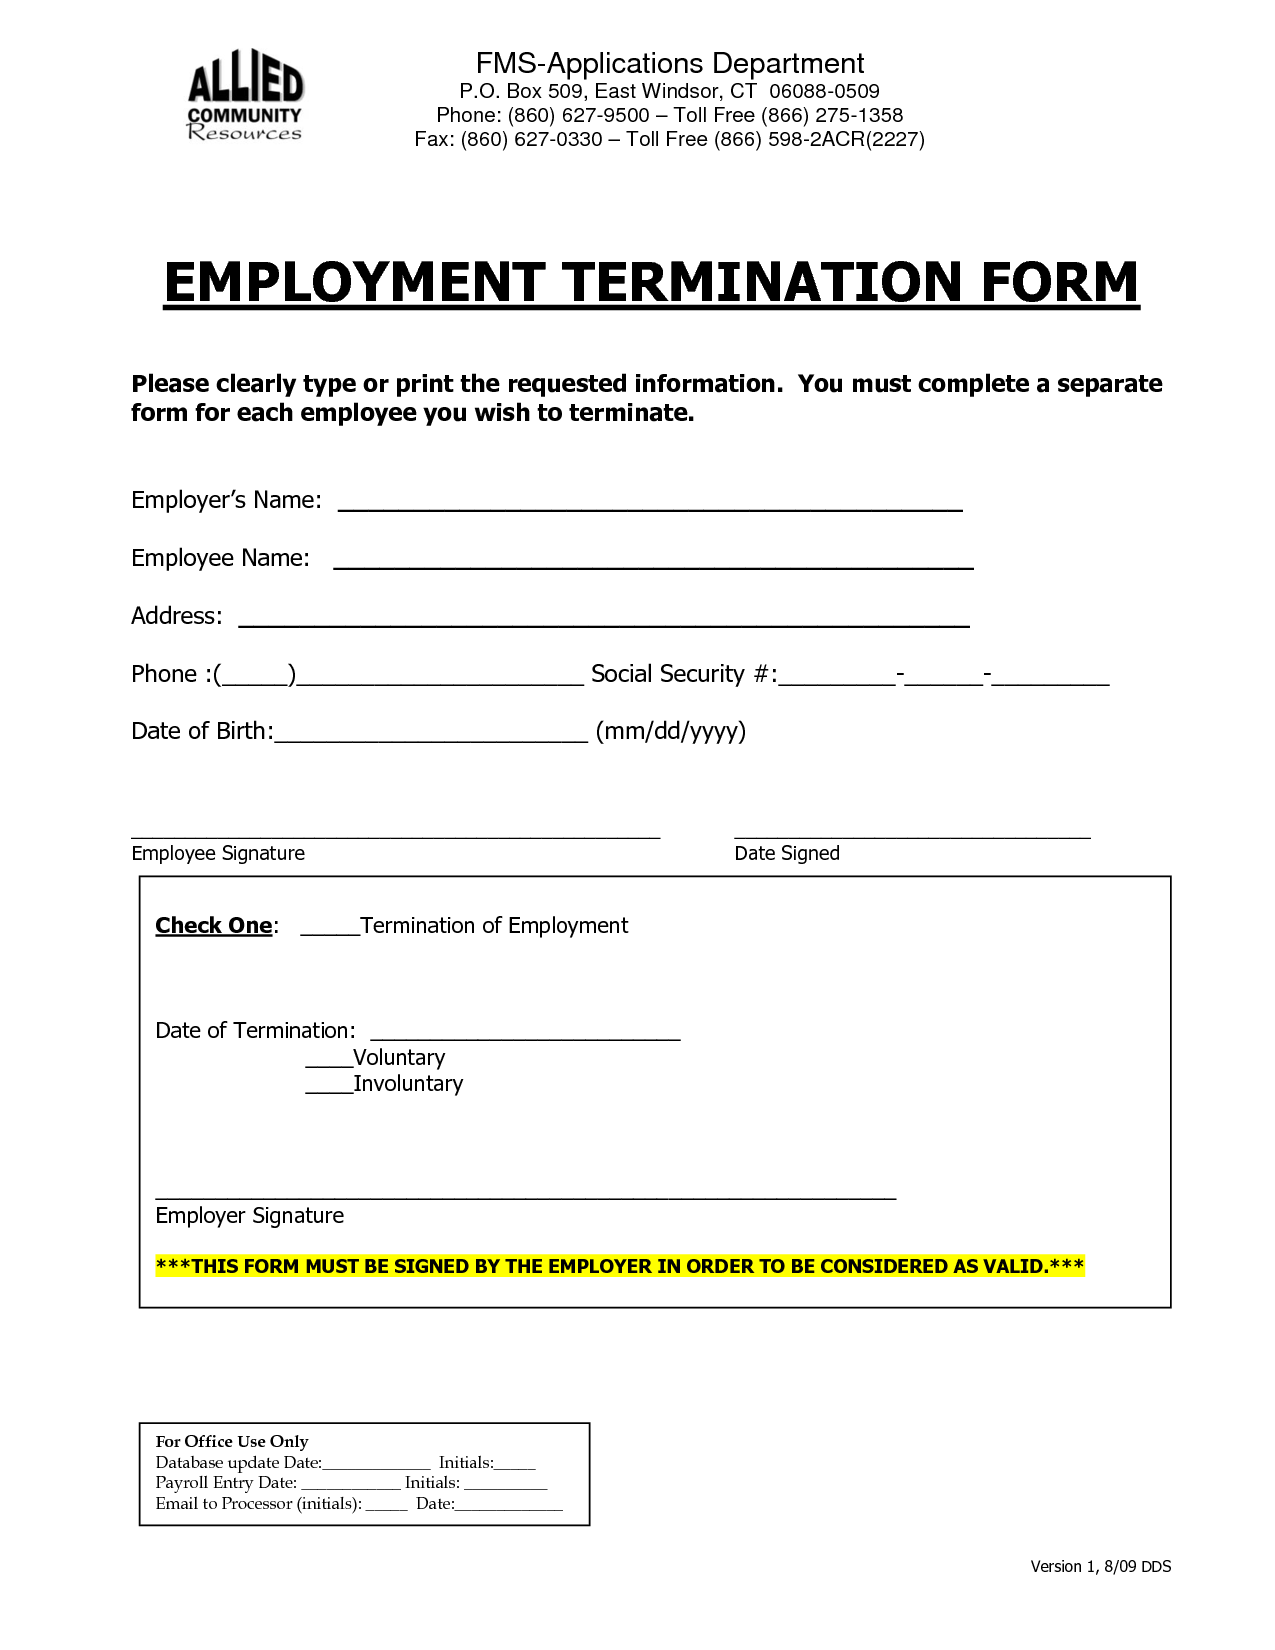 Employment Termination Form  Employee Forms